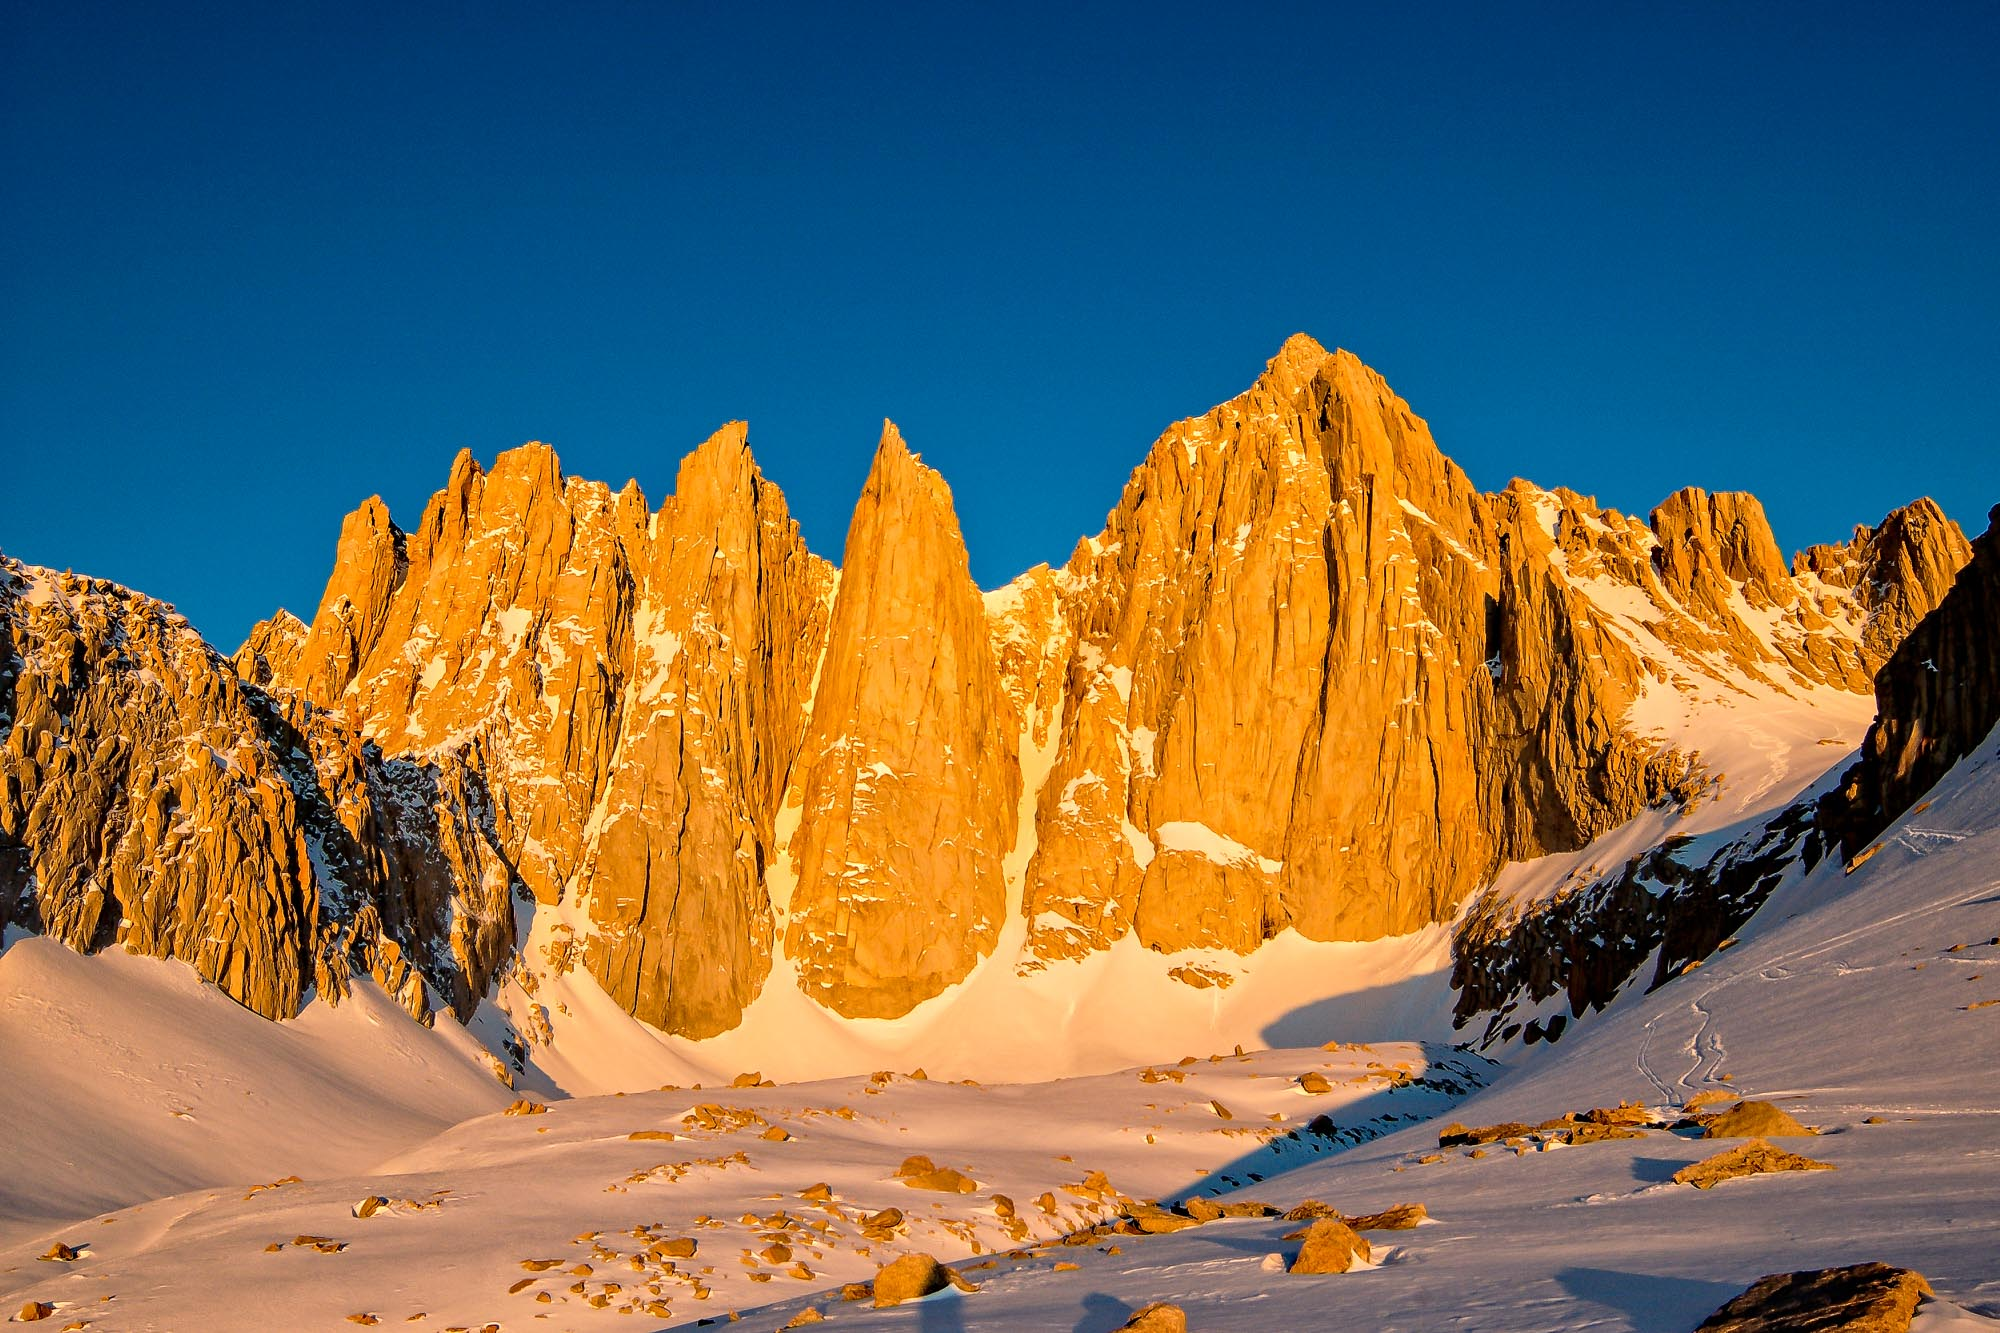 Dawn on Mount Whitney: Mountaineer's Route visible to the right.